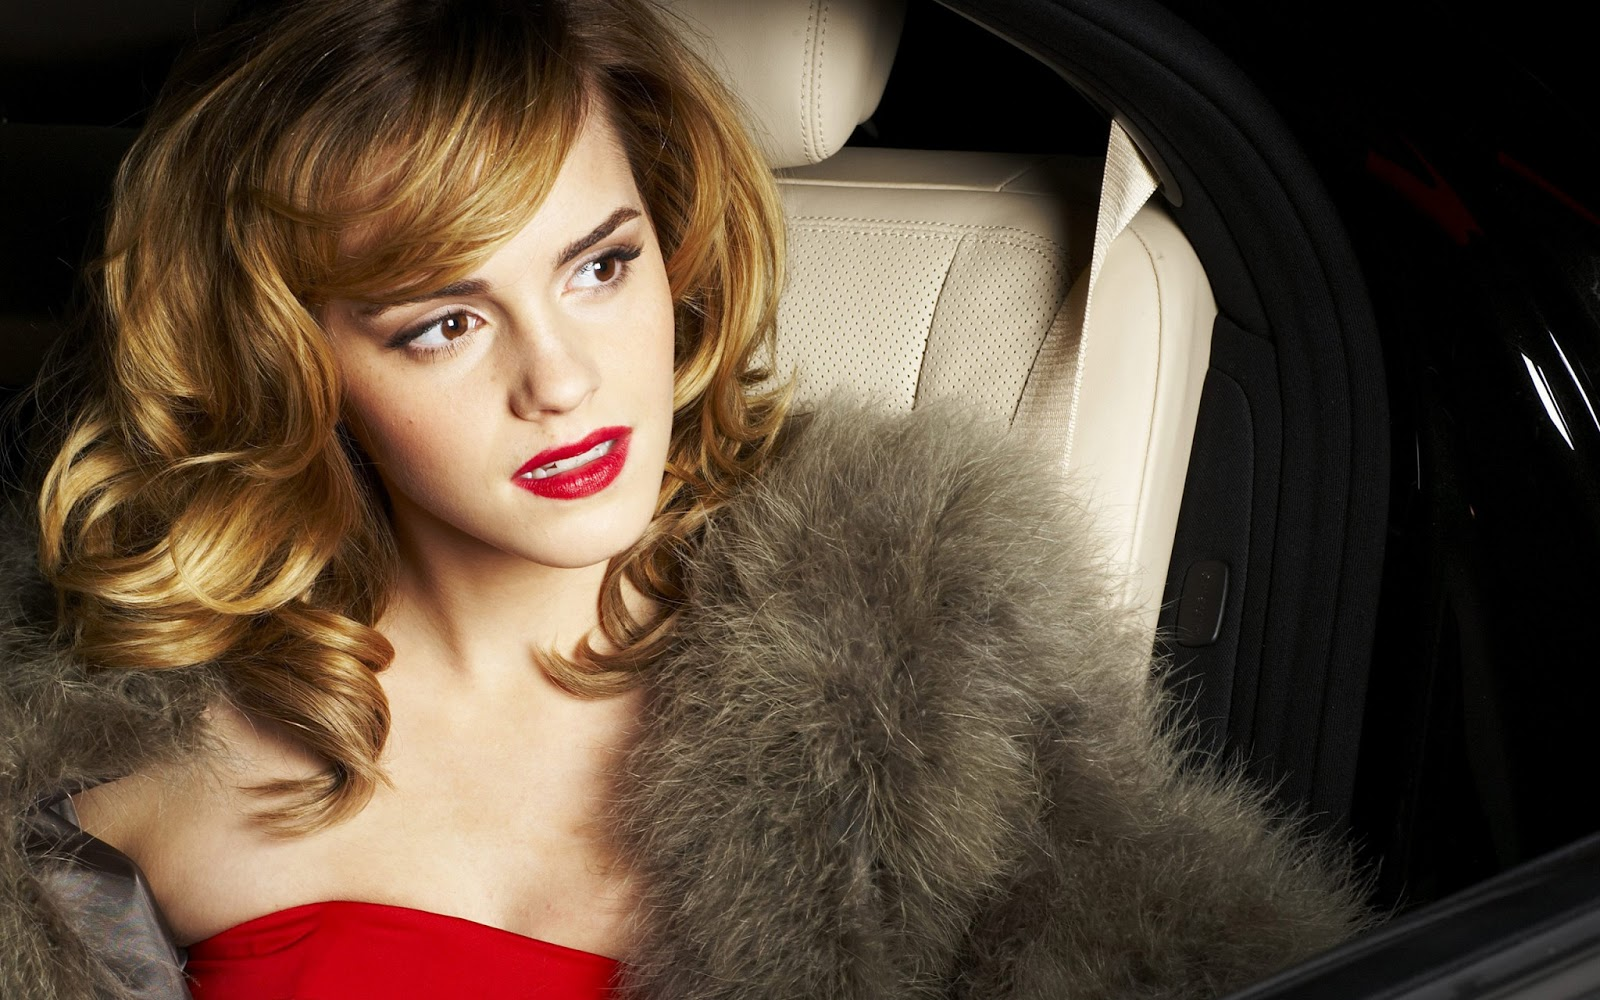 Cute Pic Girl Wallpaper Top Charts Celebrity Pictures Of Emma Watson